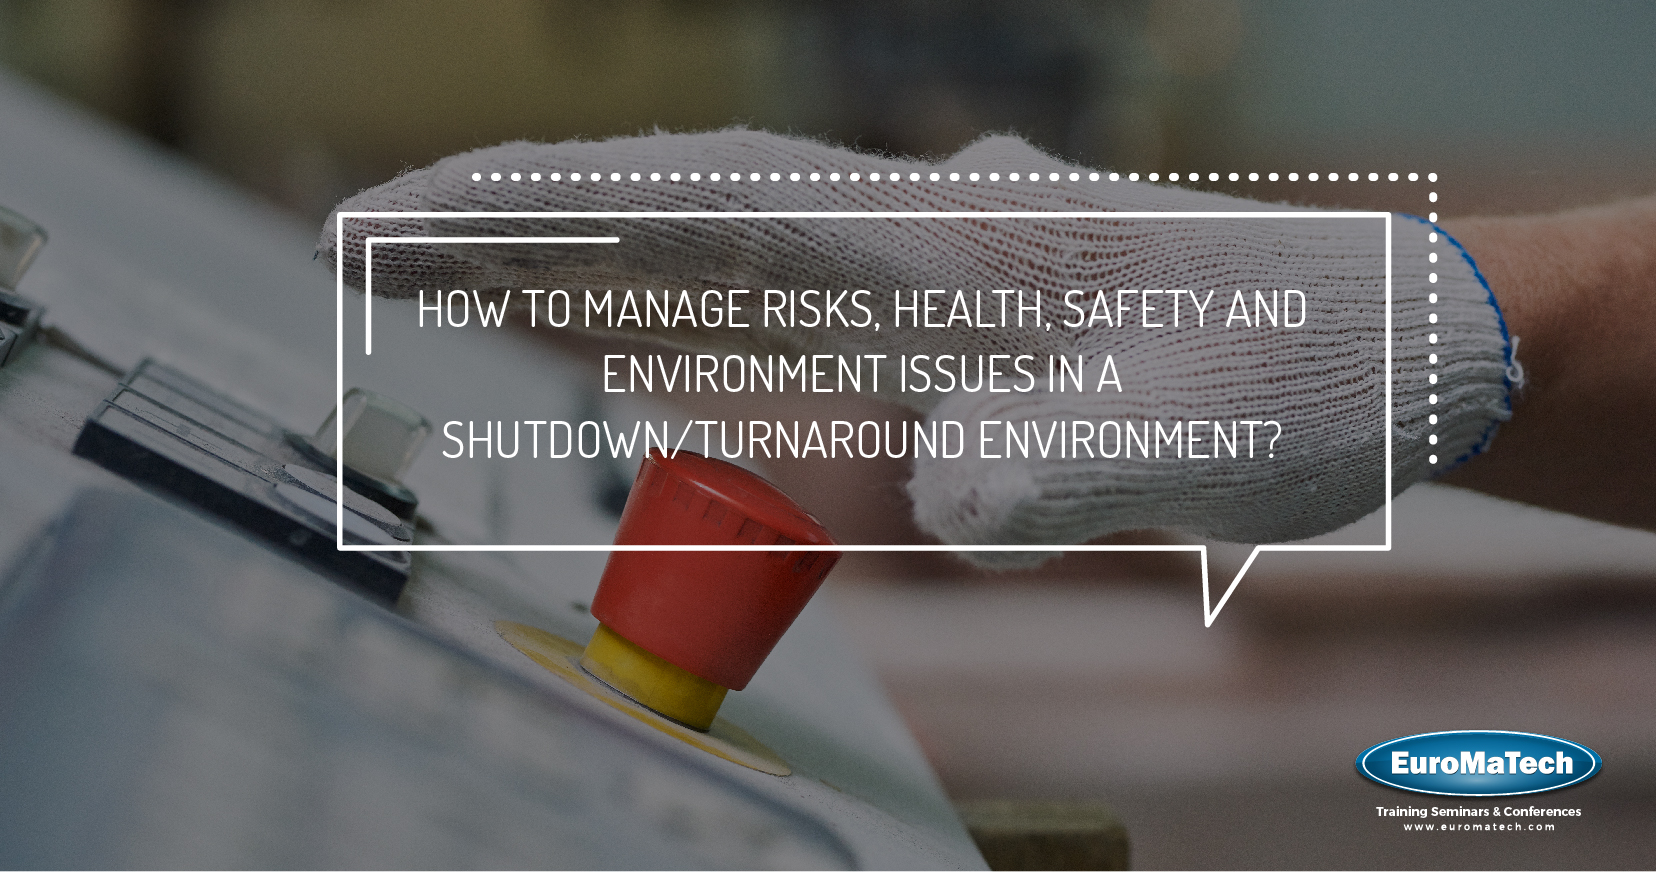 Managing Shutdowns, Turnarounds and Outages Training Course